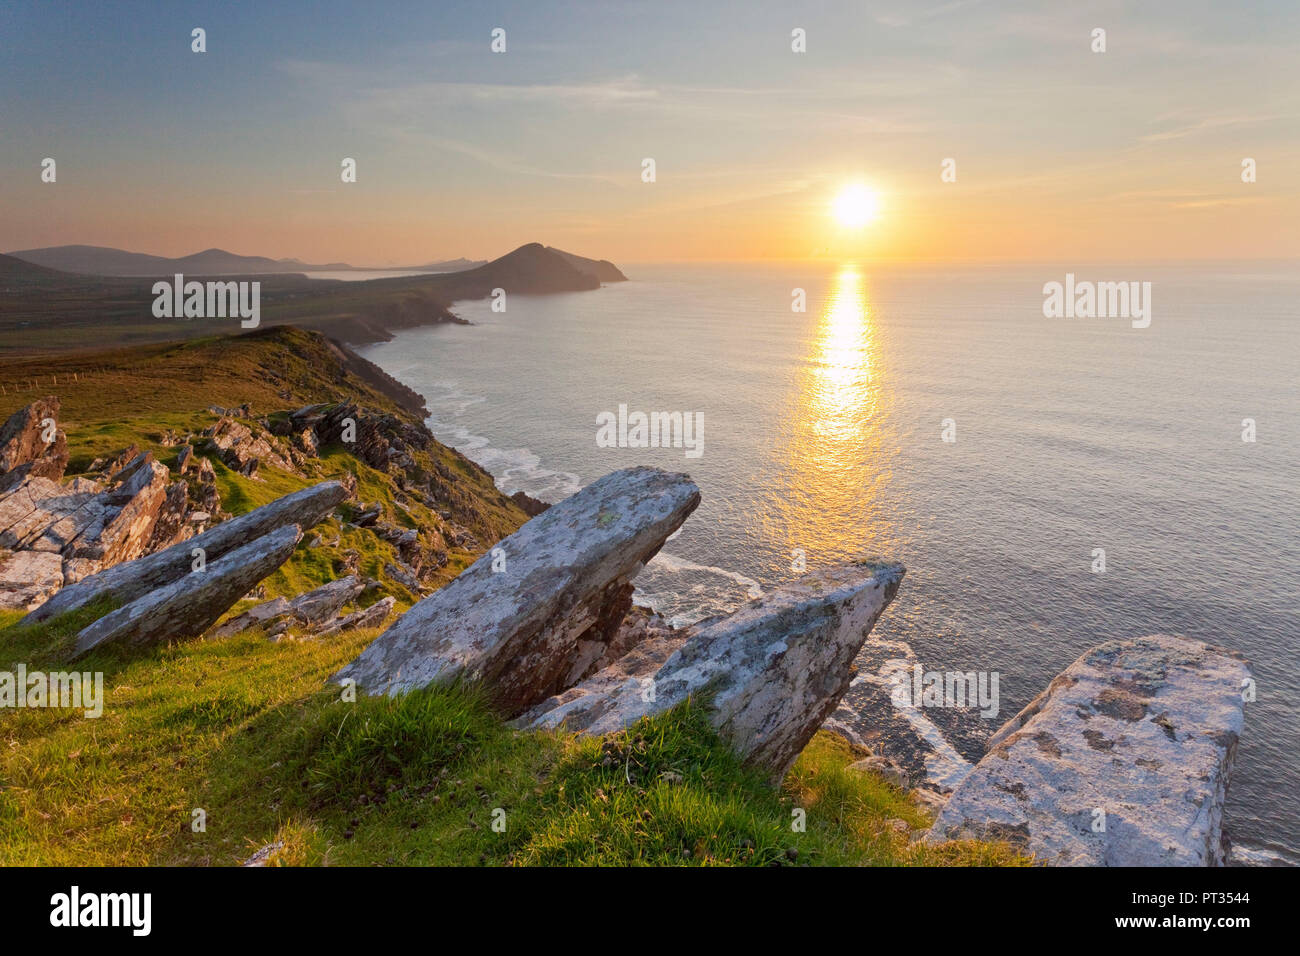 View from high cliffs overlooking the coastline of Dingle Peninsula at sunset, Taken from the western trail up to Mount Brandon, Northern Part of Dingle Peninsula, Western Ireland, - Stock Image